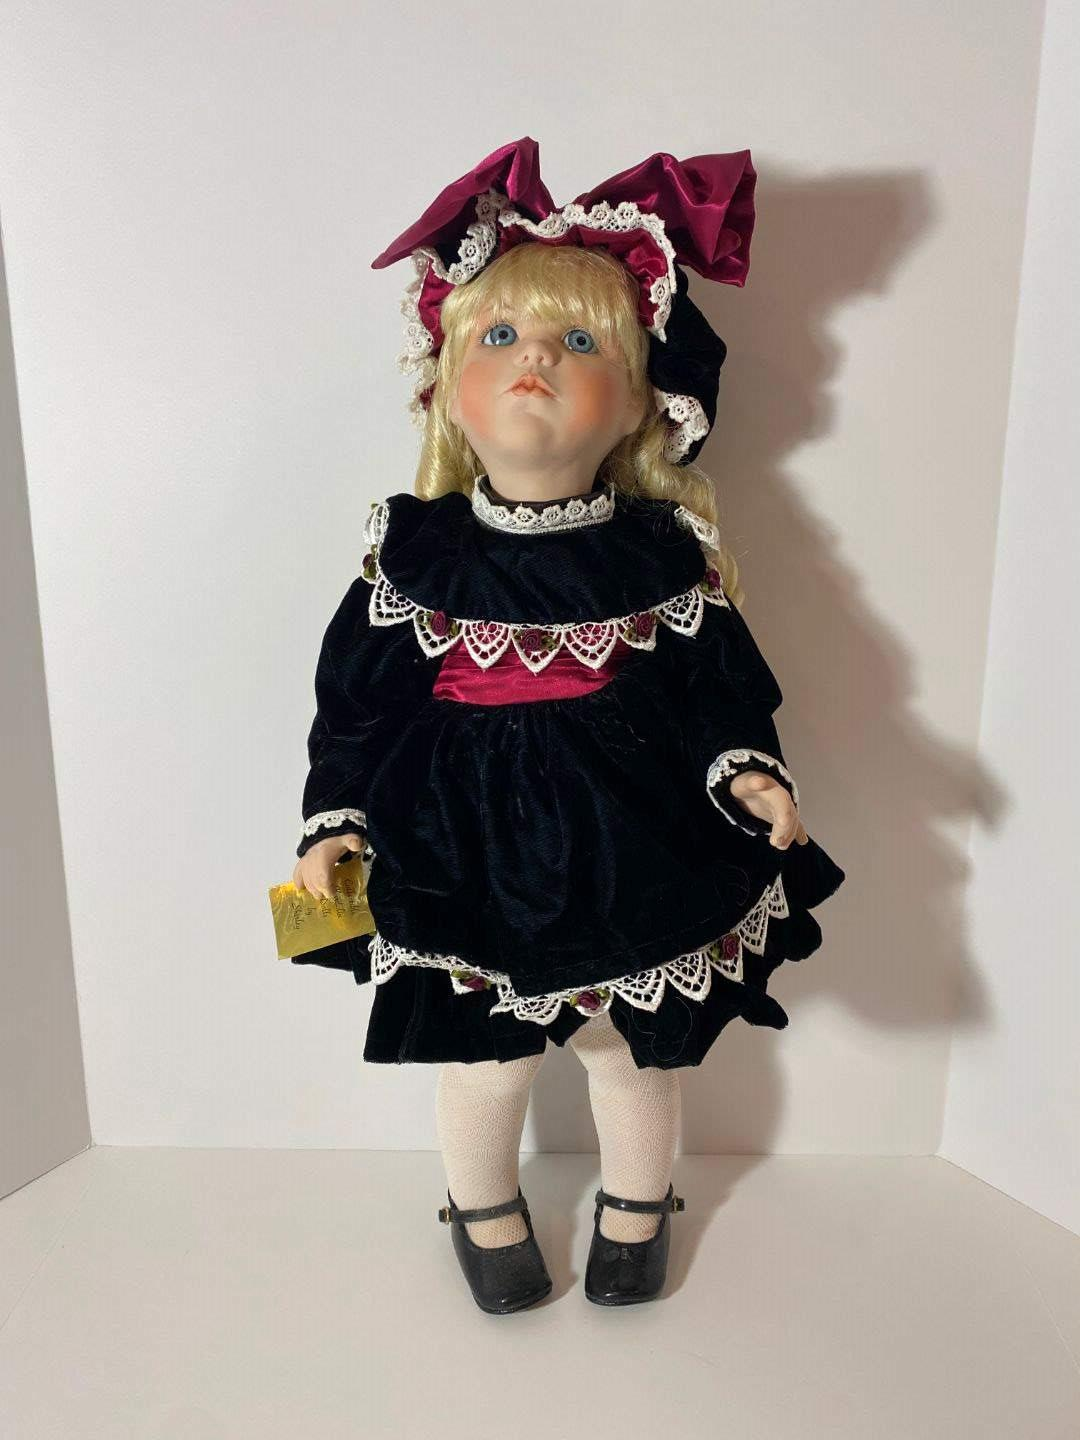 """Lot # 248 - 100% Porcelain """"Collectible Kardolin Dolls"""" by Shirley (Brittany) Signed & Numbered - #17/250 (main image)"""